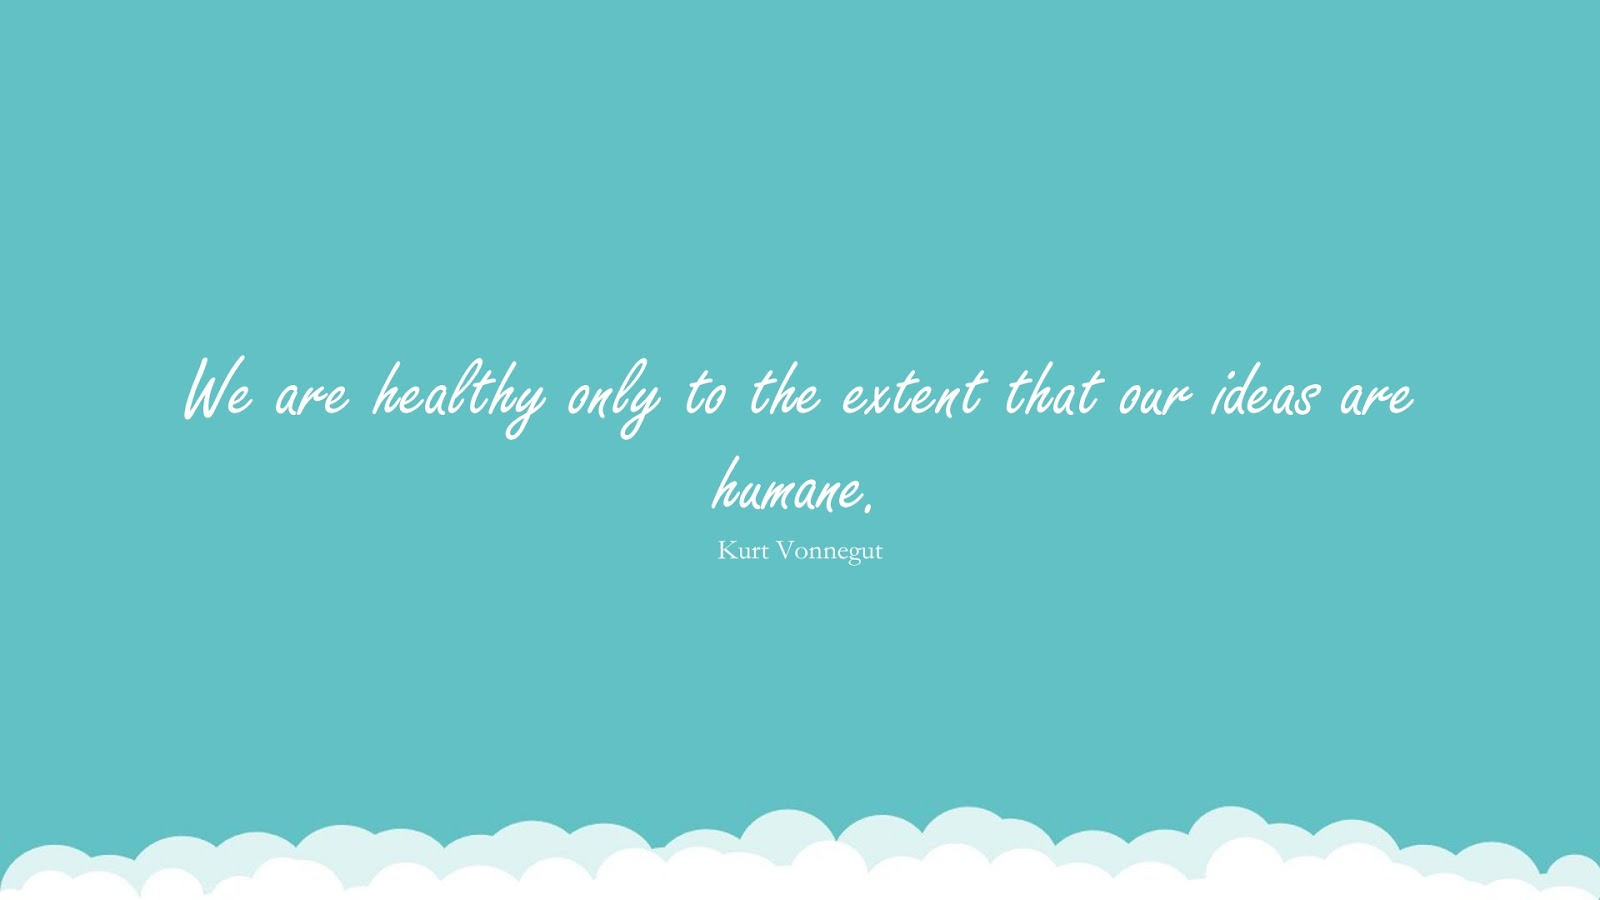 We are healthy only to the extent that our ideas are humane. (Kurt Vonnegut);  #HumanityQuotes